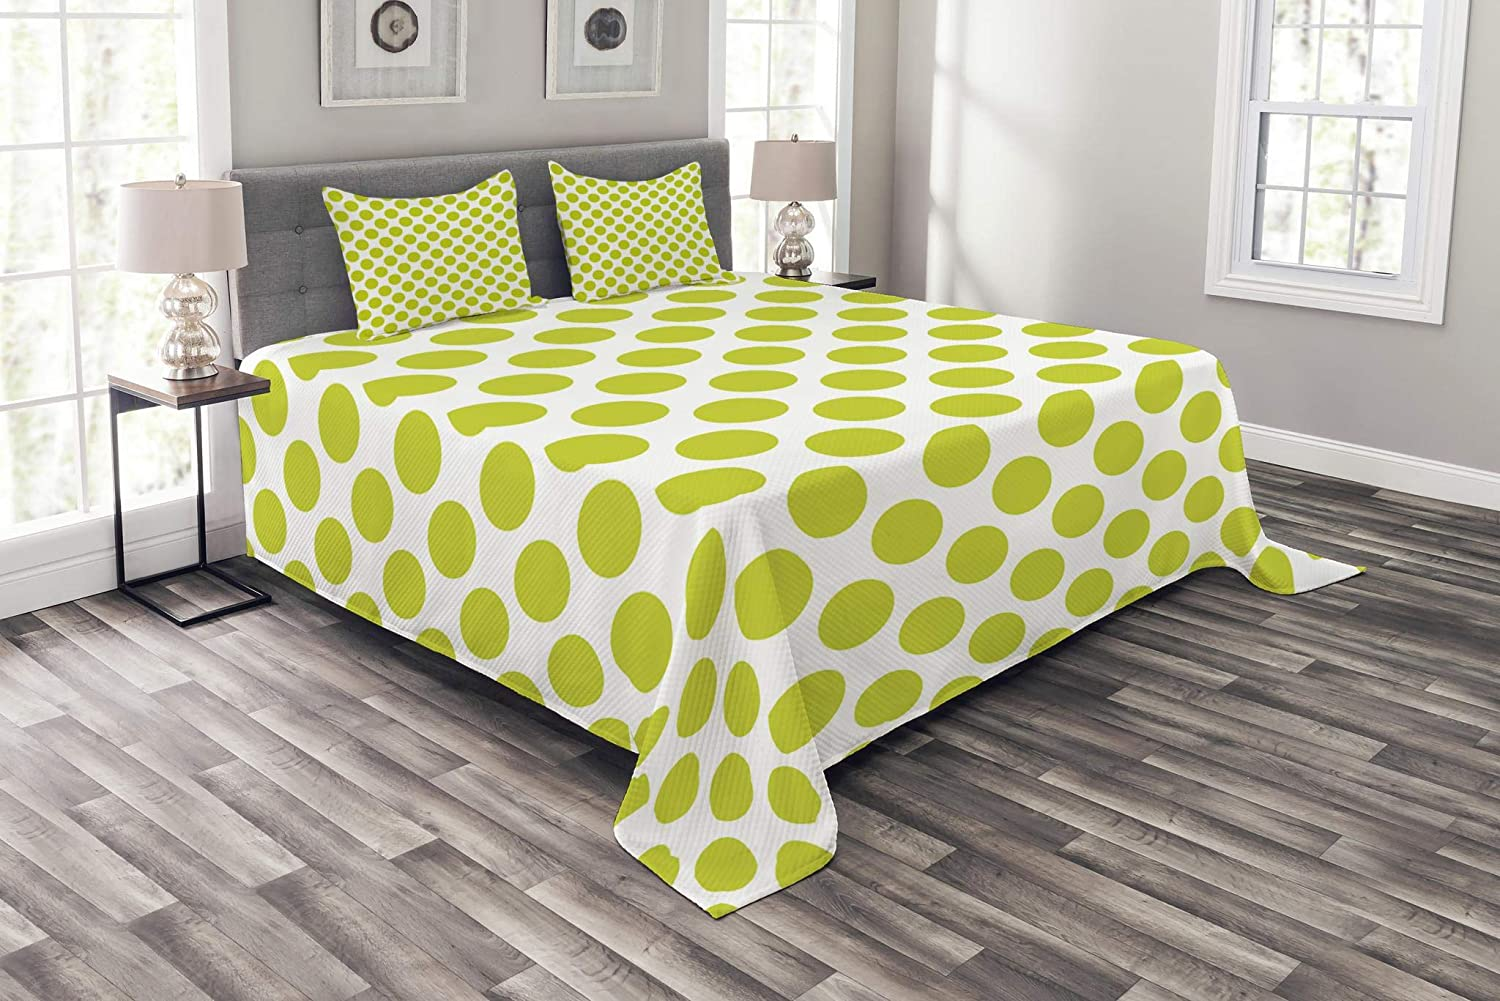 Ambesonne Lime Green Bedspread, Nostalgic Polka Dots Style Large Circles Girlish Vintage Rounds Pattern, Decorative Quilted 3 Piece Coverlet Set with 2 Pillow Shams, Queen Size, Apple Green